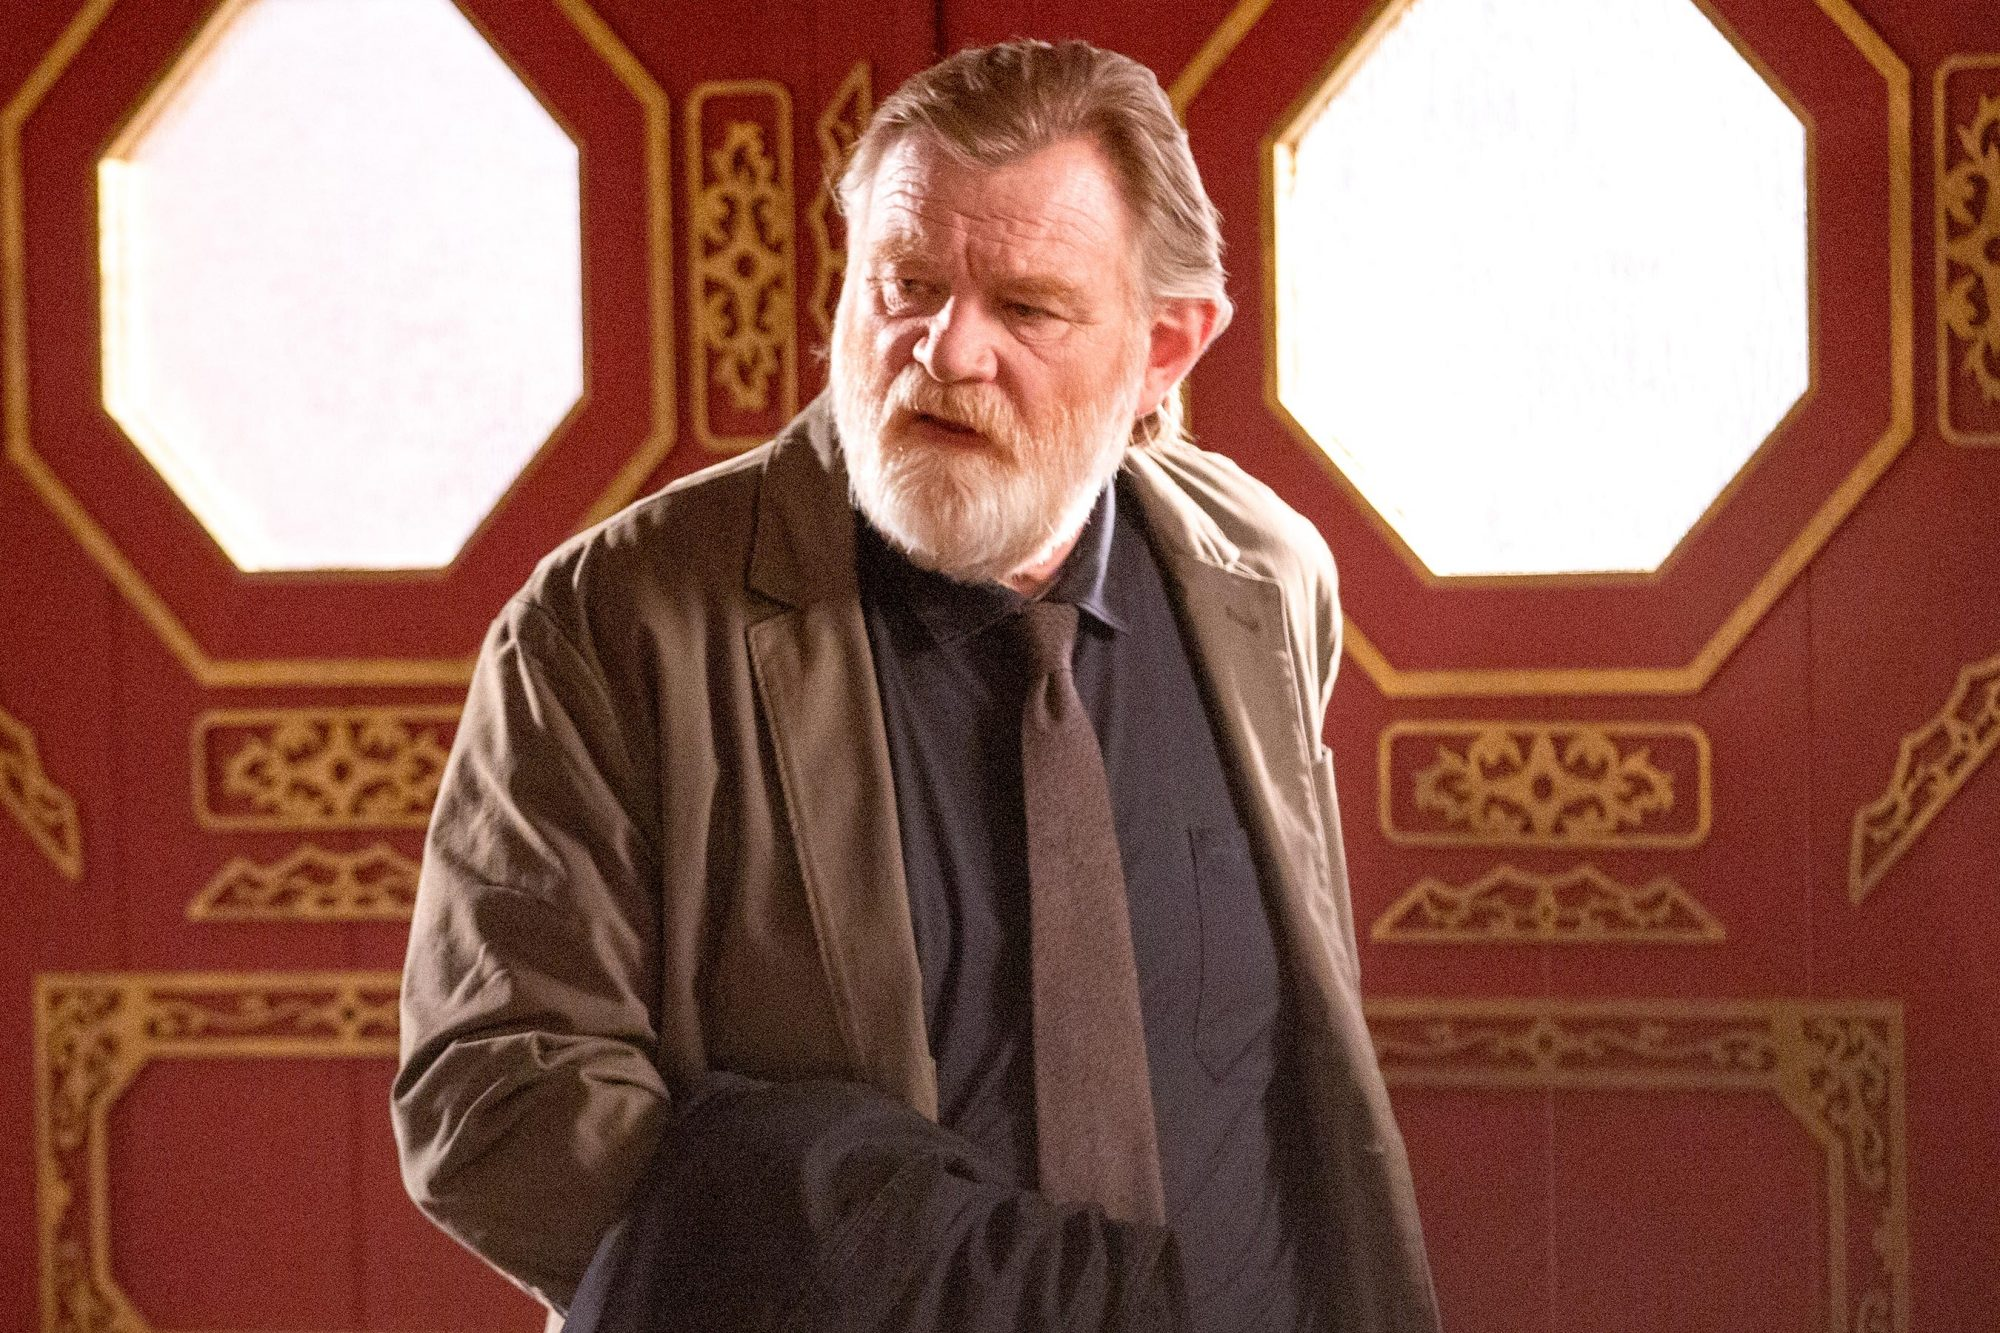 Mr. Mercedes Season 3 Brendan Gleeson Photo: Kent Smith/AT+T AUDIENCE Network